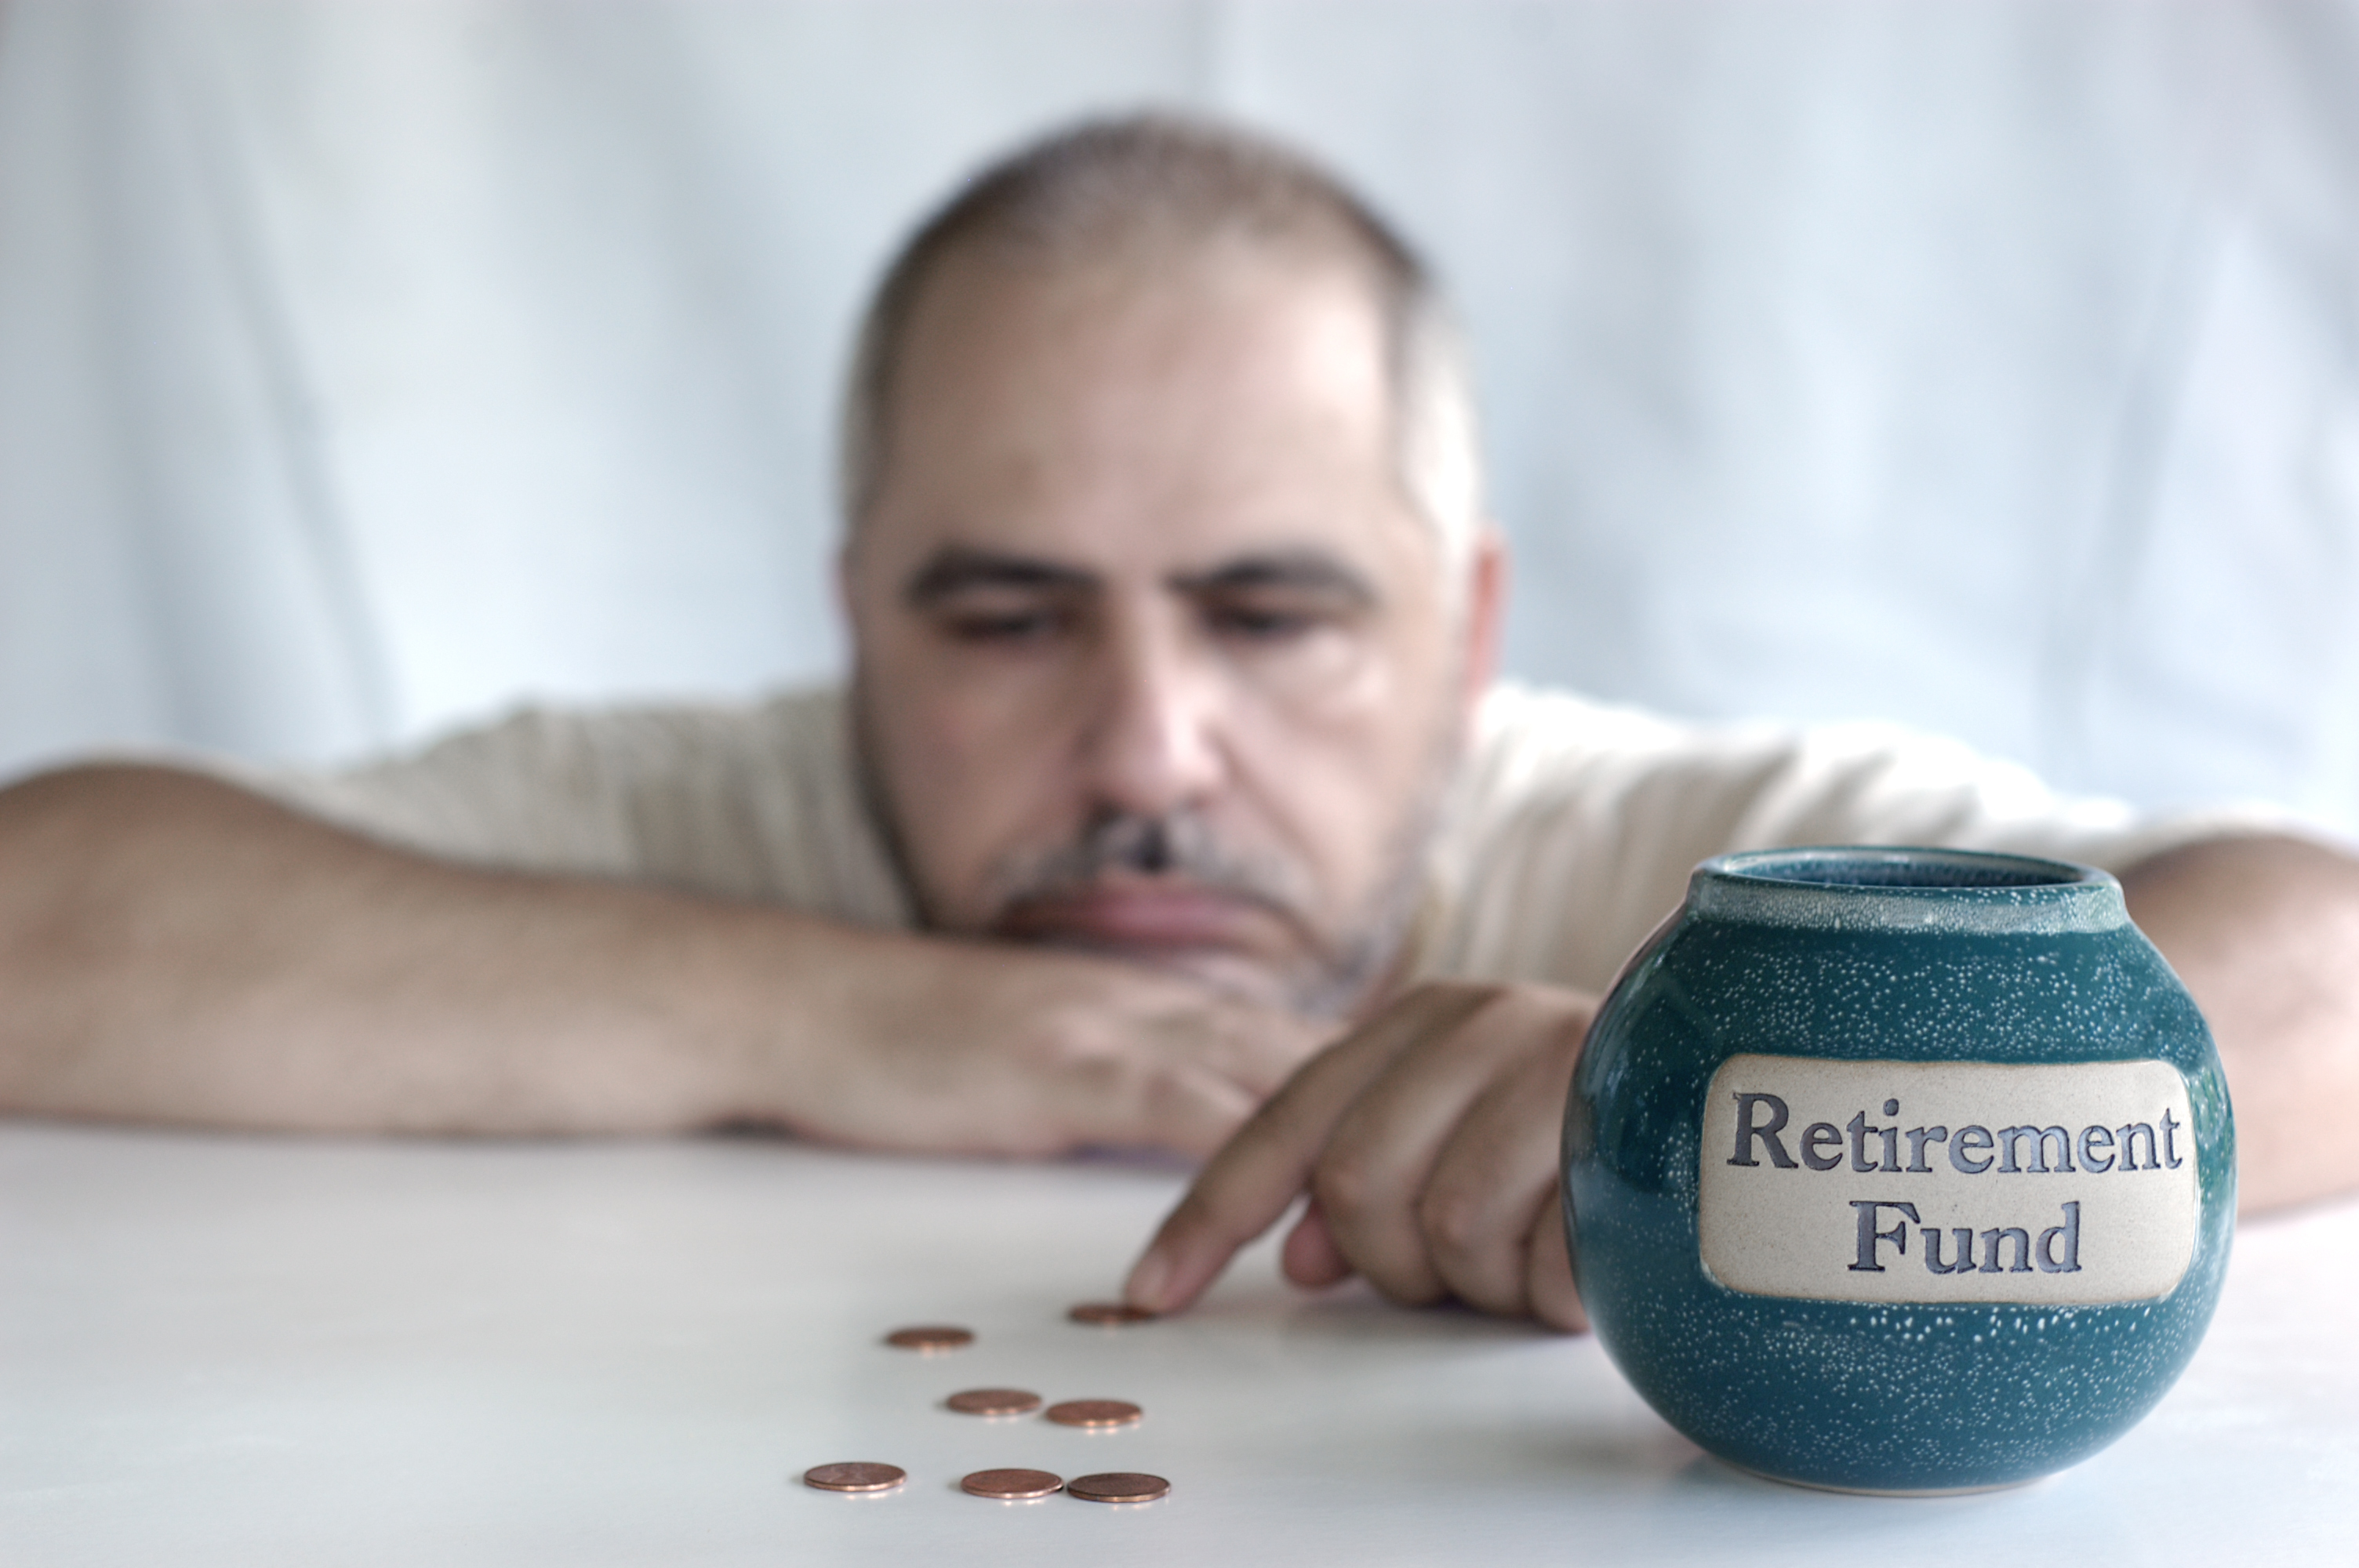 Most people are planning to retire poor